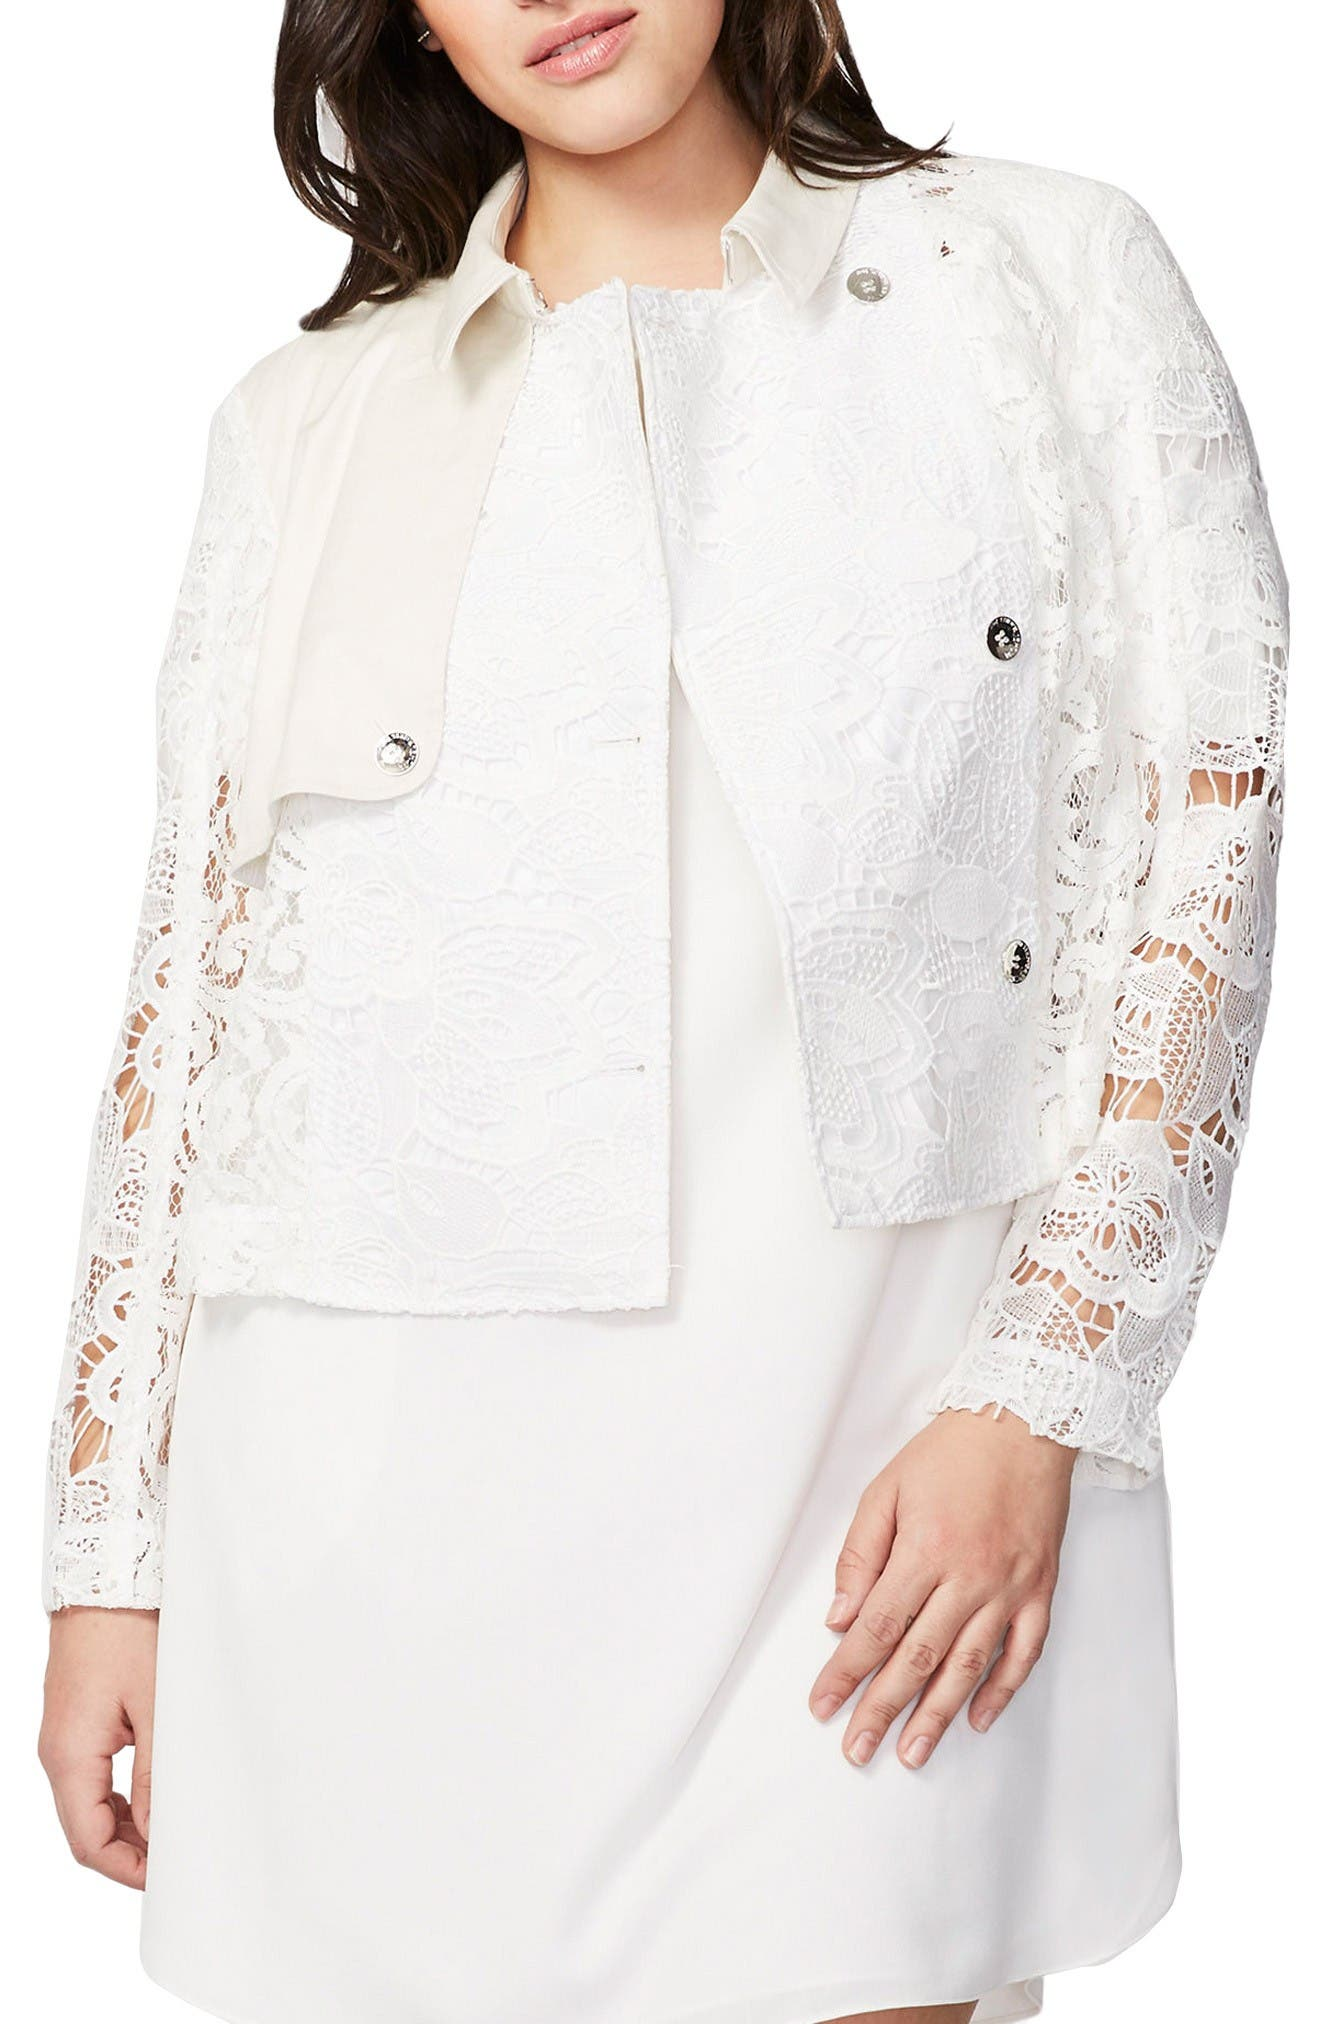 Alternate Image 1 Selected - Rachel Roy Crop Lace Trench Jacket (Plus Size)